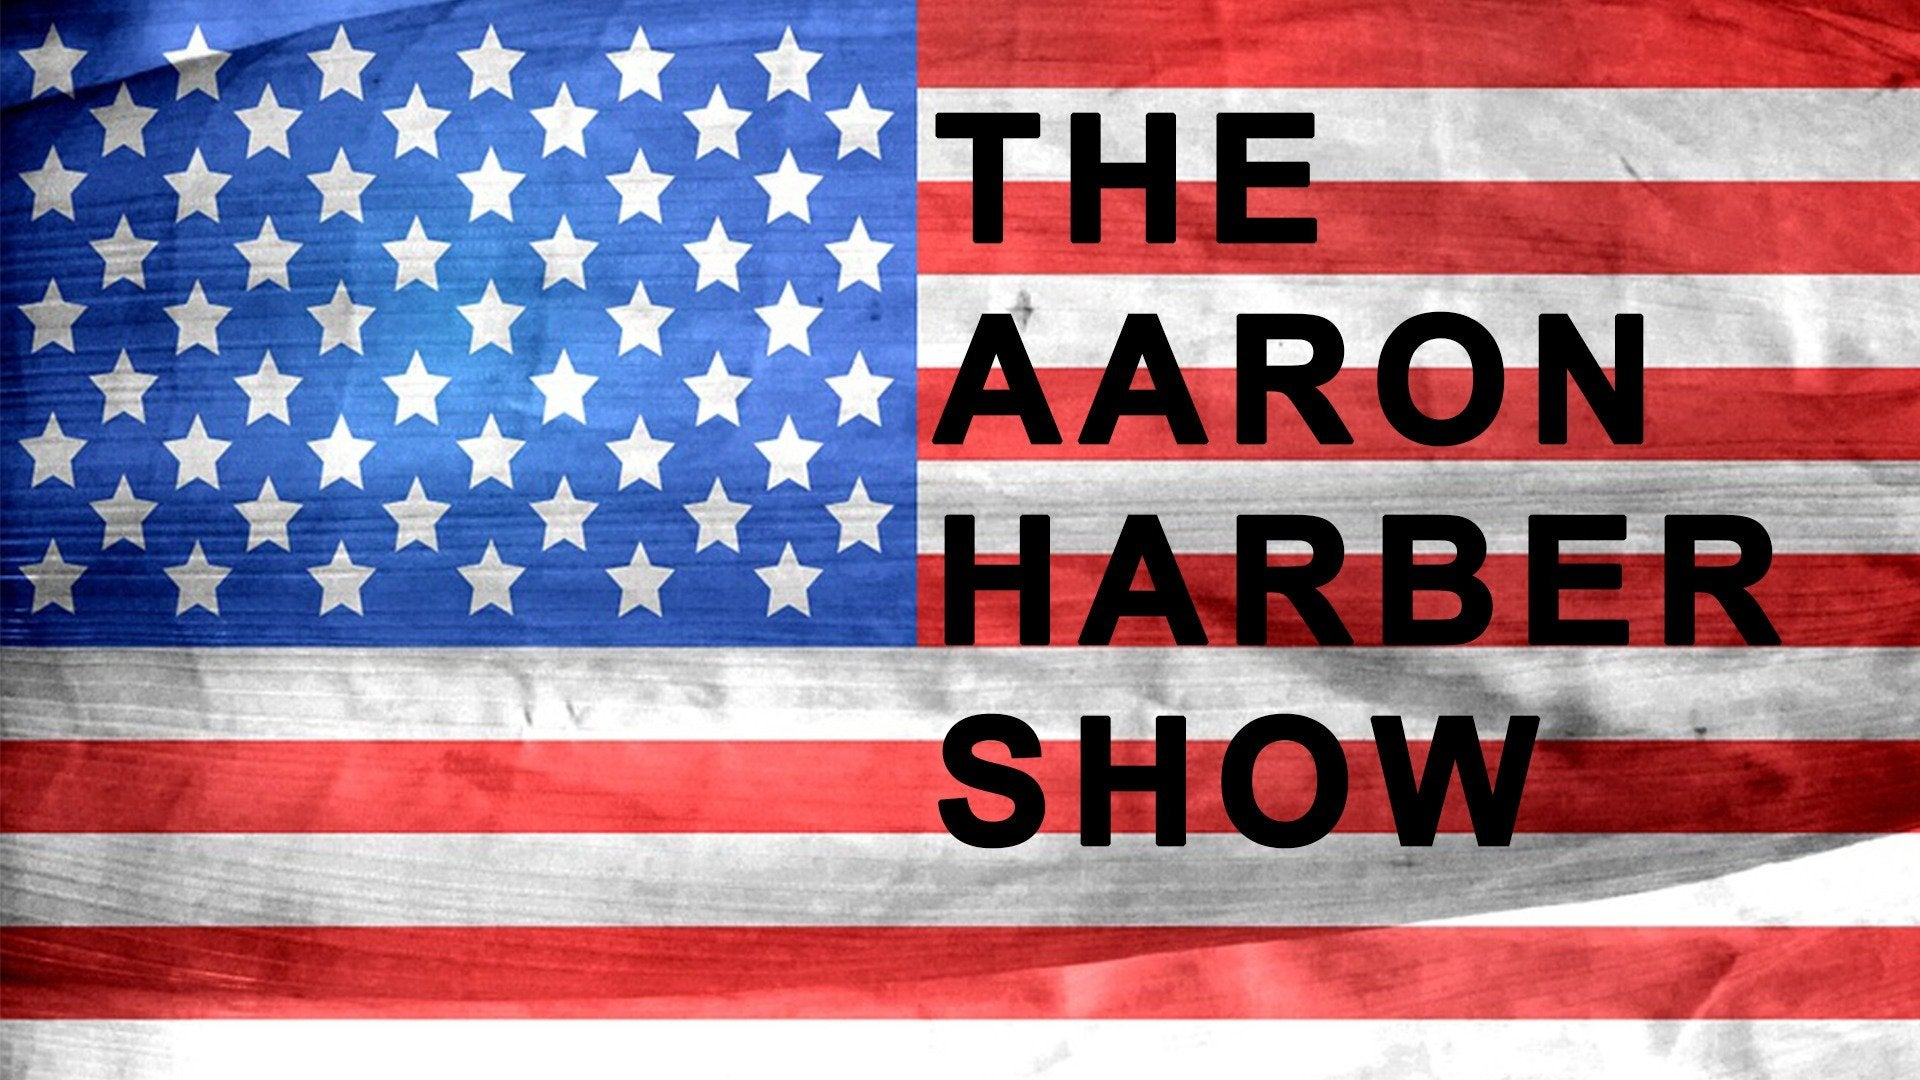 The Aaron Harber Show